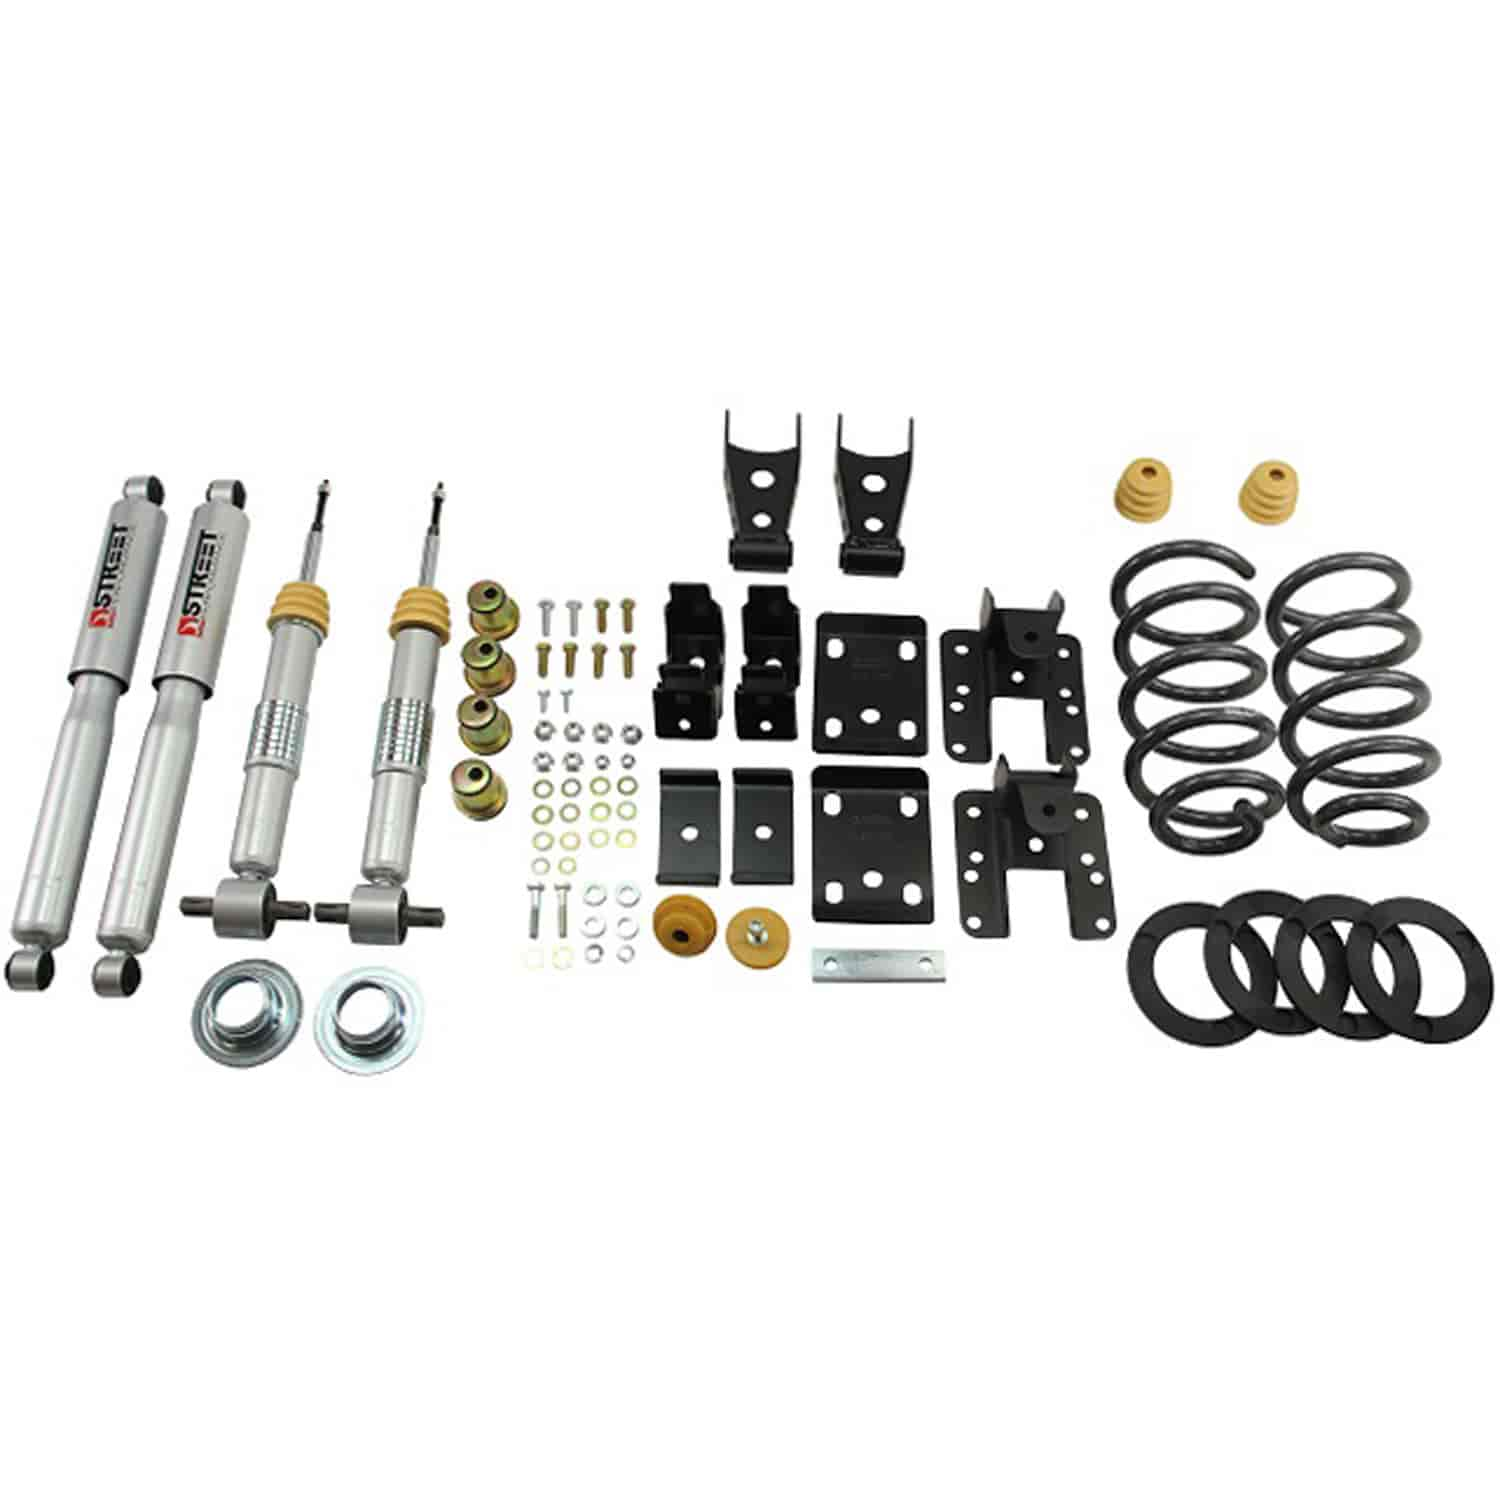 Belltech 651sp Complete Lowering Kit For Chevy